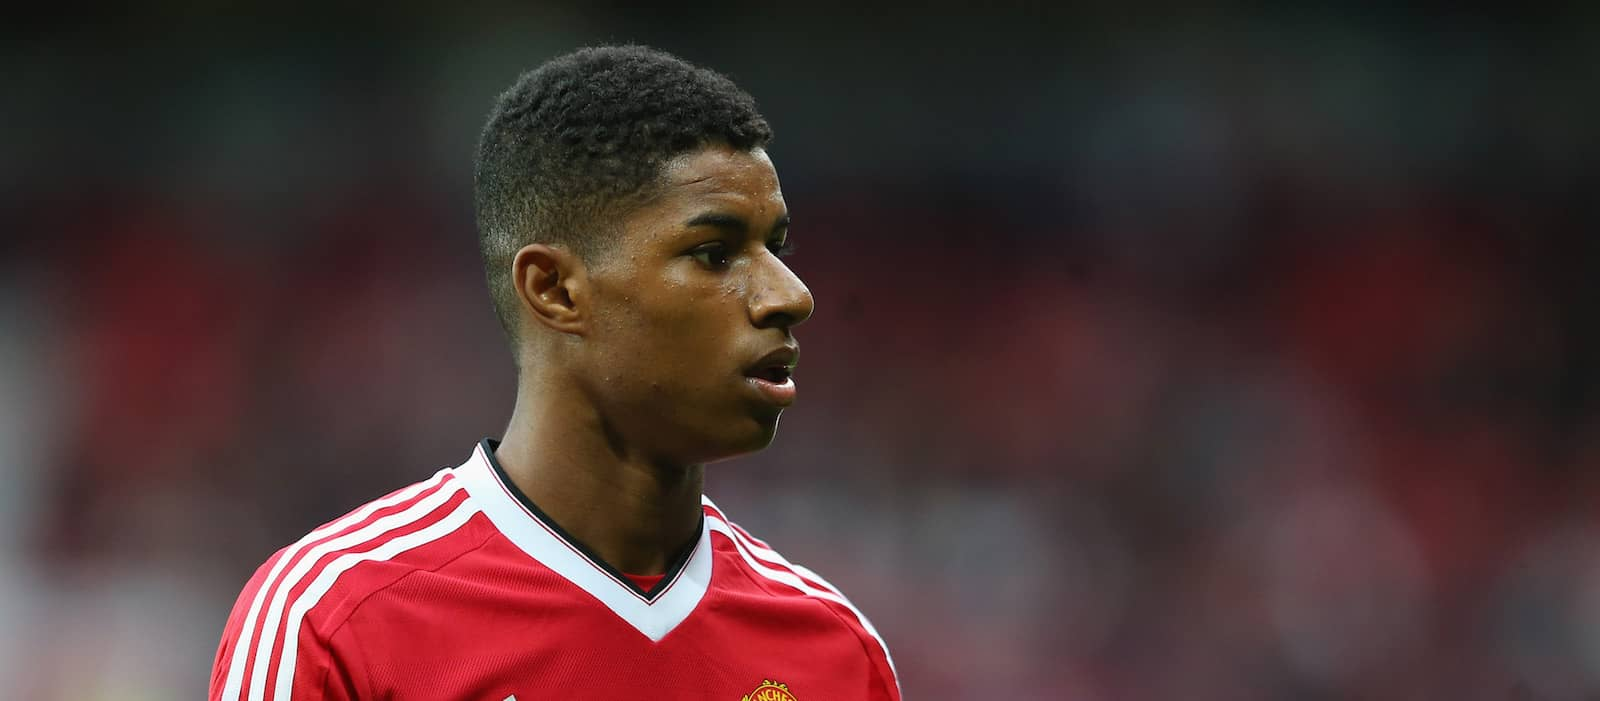 Louis van Gaal hopeful Marcus Rashford can repeat goalscoring heroics in FA Cup final